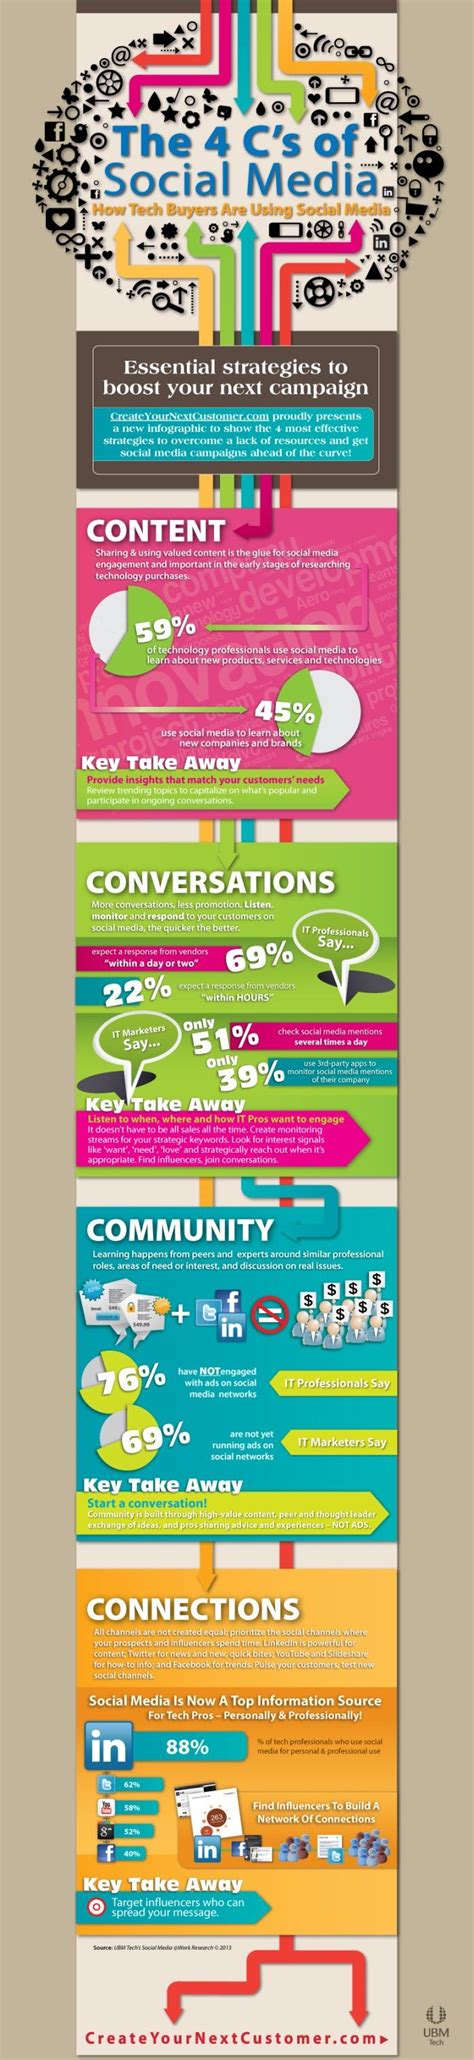 Mba Social Media Marketing Leo by Infographic The 4 C S Of Social Media Marketing